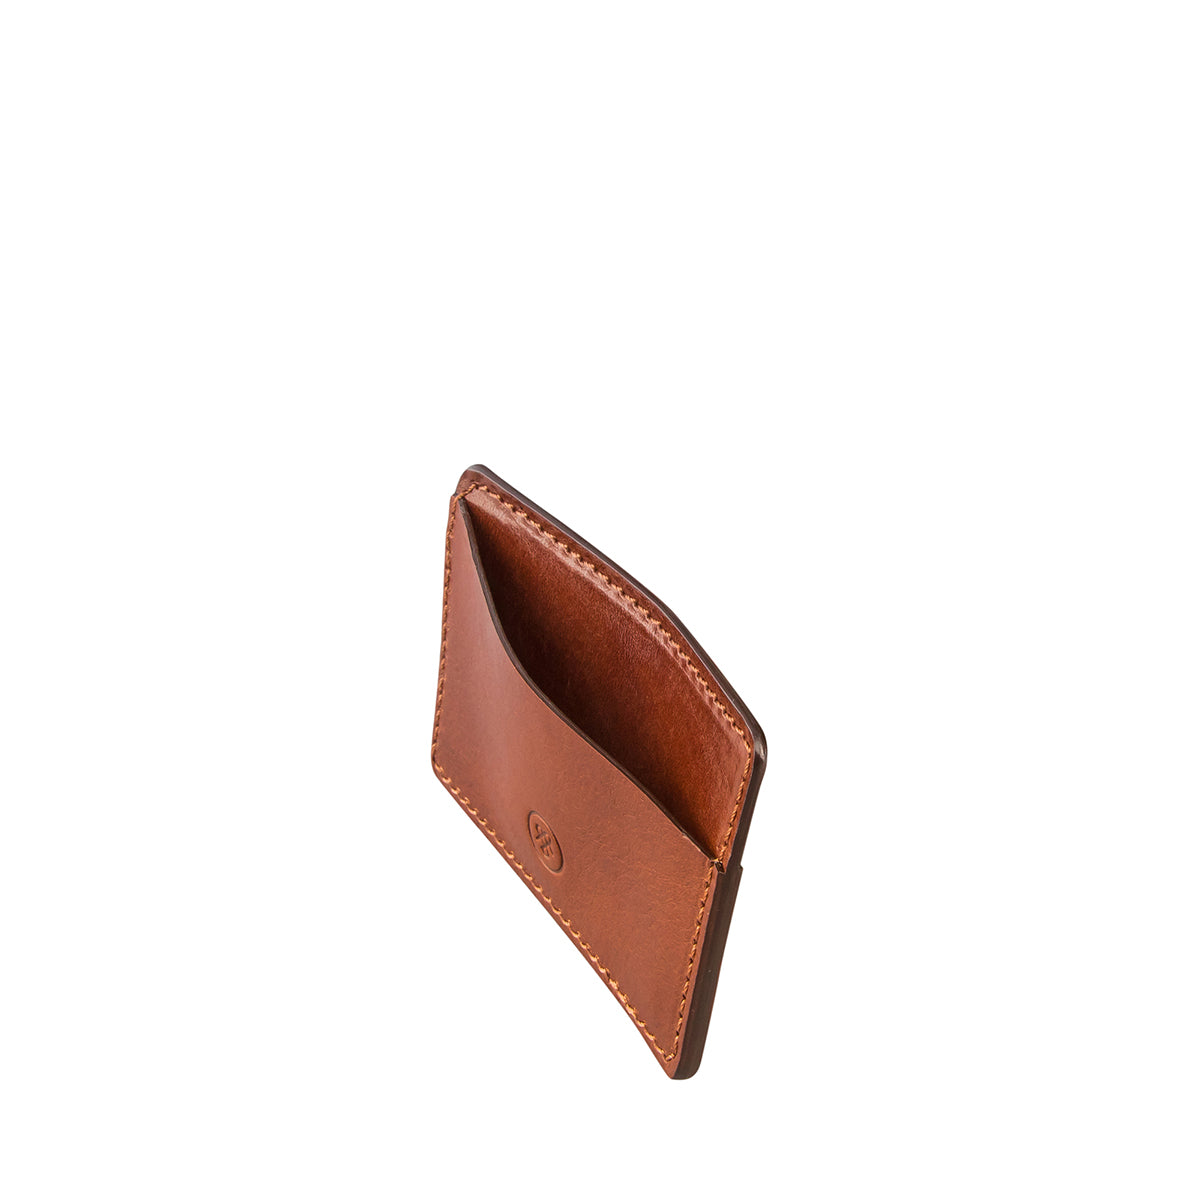 Image 4 of the 'Max' Tan Leather Business Card Holder